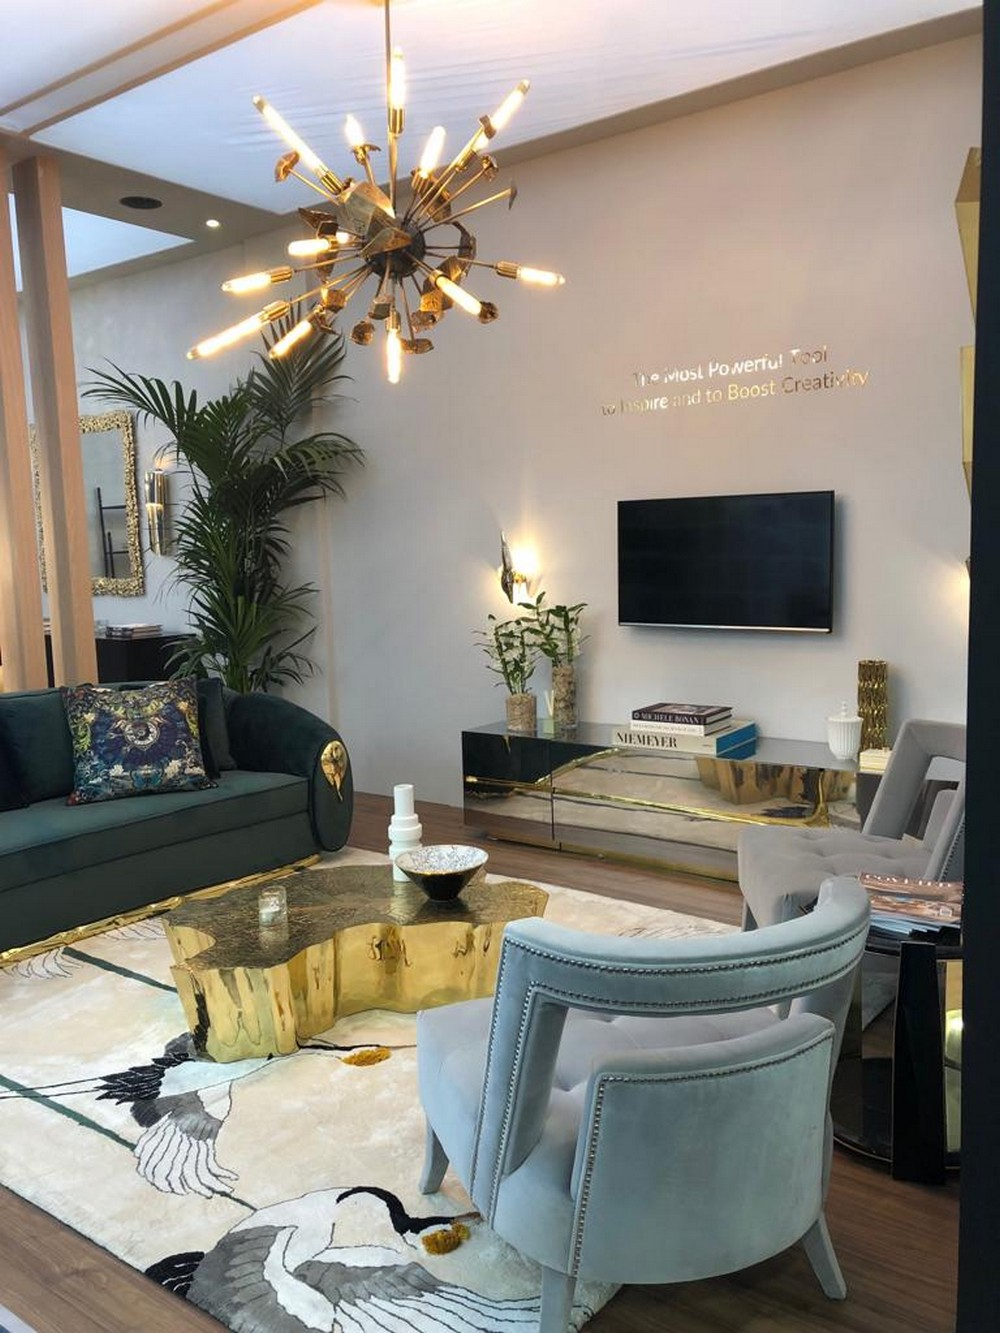 CovetED Unveiled The Best Home Decor Inspirations From Decorex 2019 decorex CovetED Unveiled The Best Home Decor Inspirations From Decorex 2019 CovetED Unveiled The Best Home Decor Inspirations From Decorex 2019 3